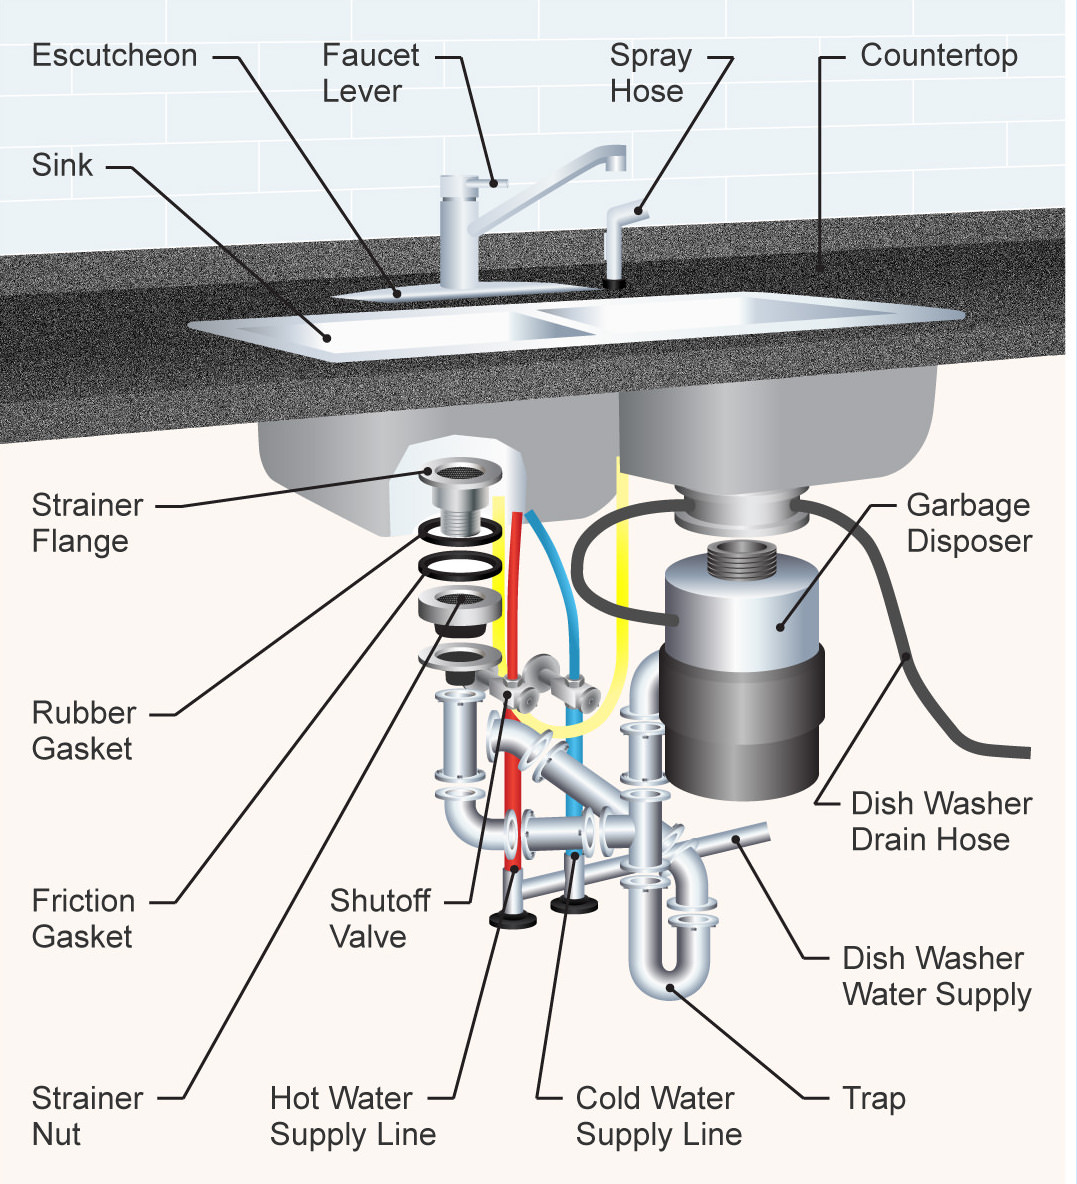 Fancy The 35 Parts Of A Kitchen Sink (Detailed Diagram) regarding High Quality Kitchen Sink Diagram